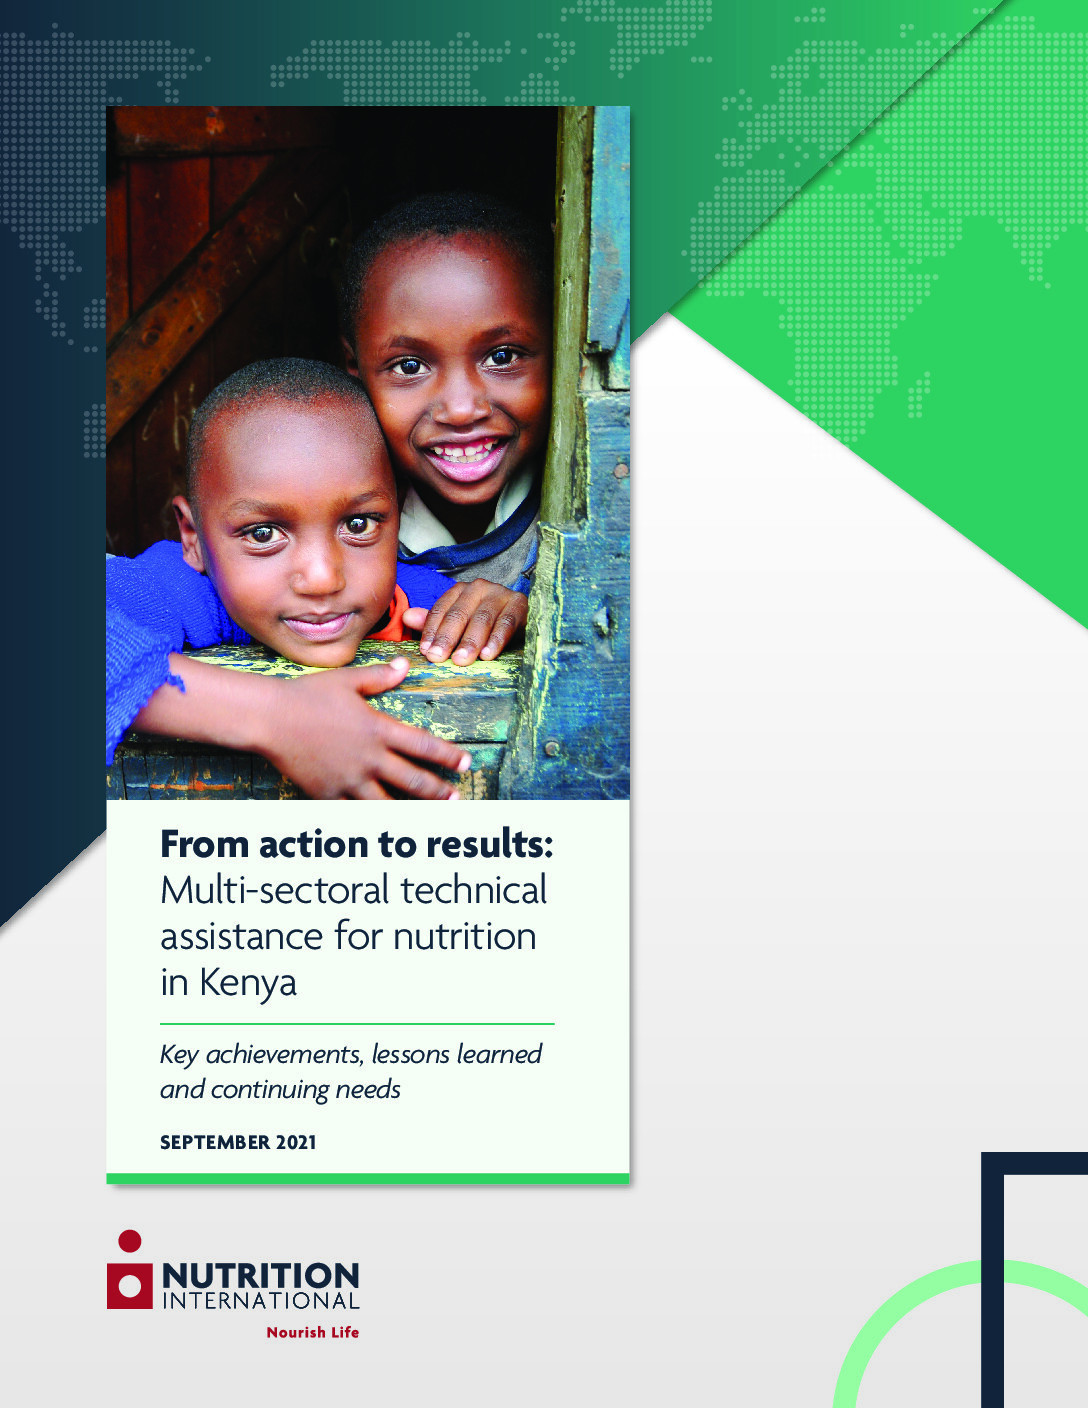 From action to results: Multi-sectoral technical assistance for nutrition in Kenya thumbnail